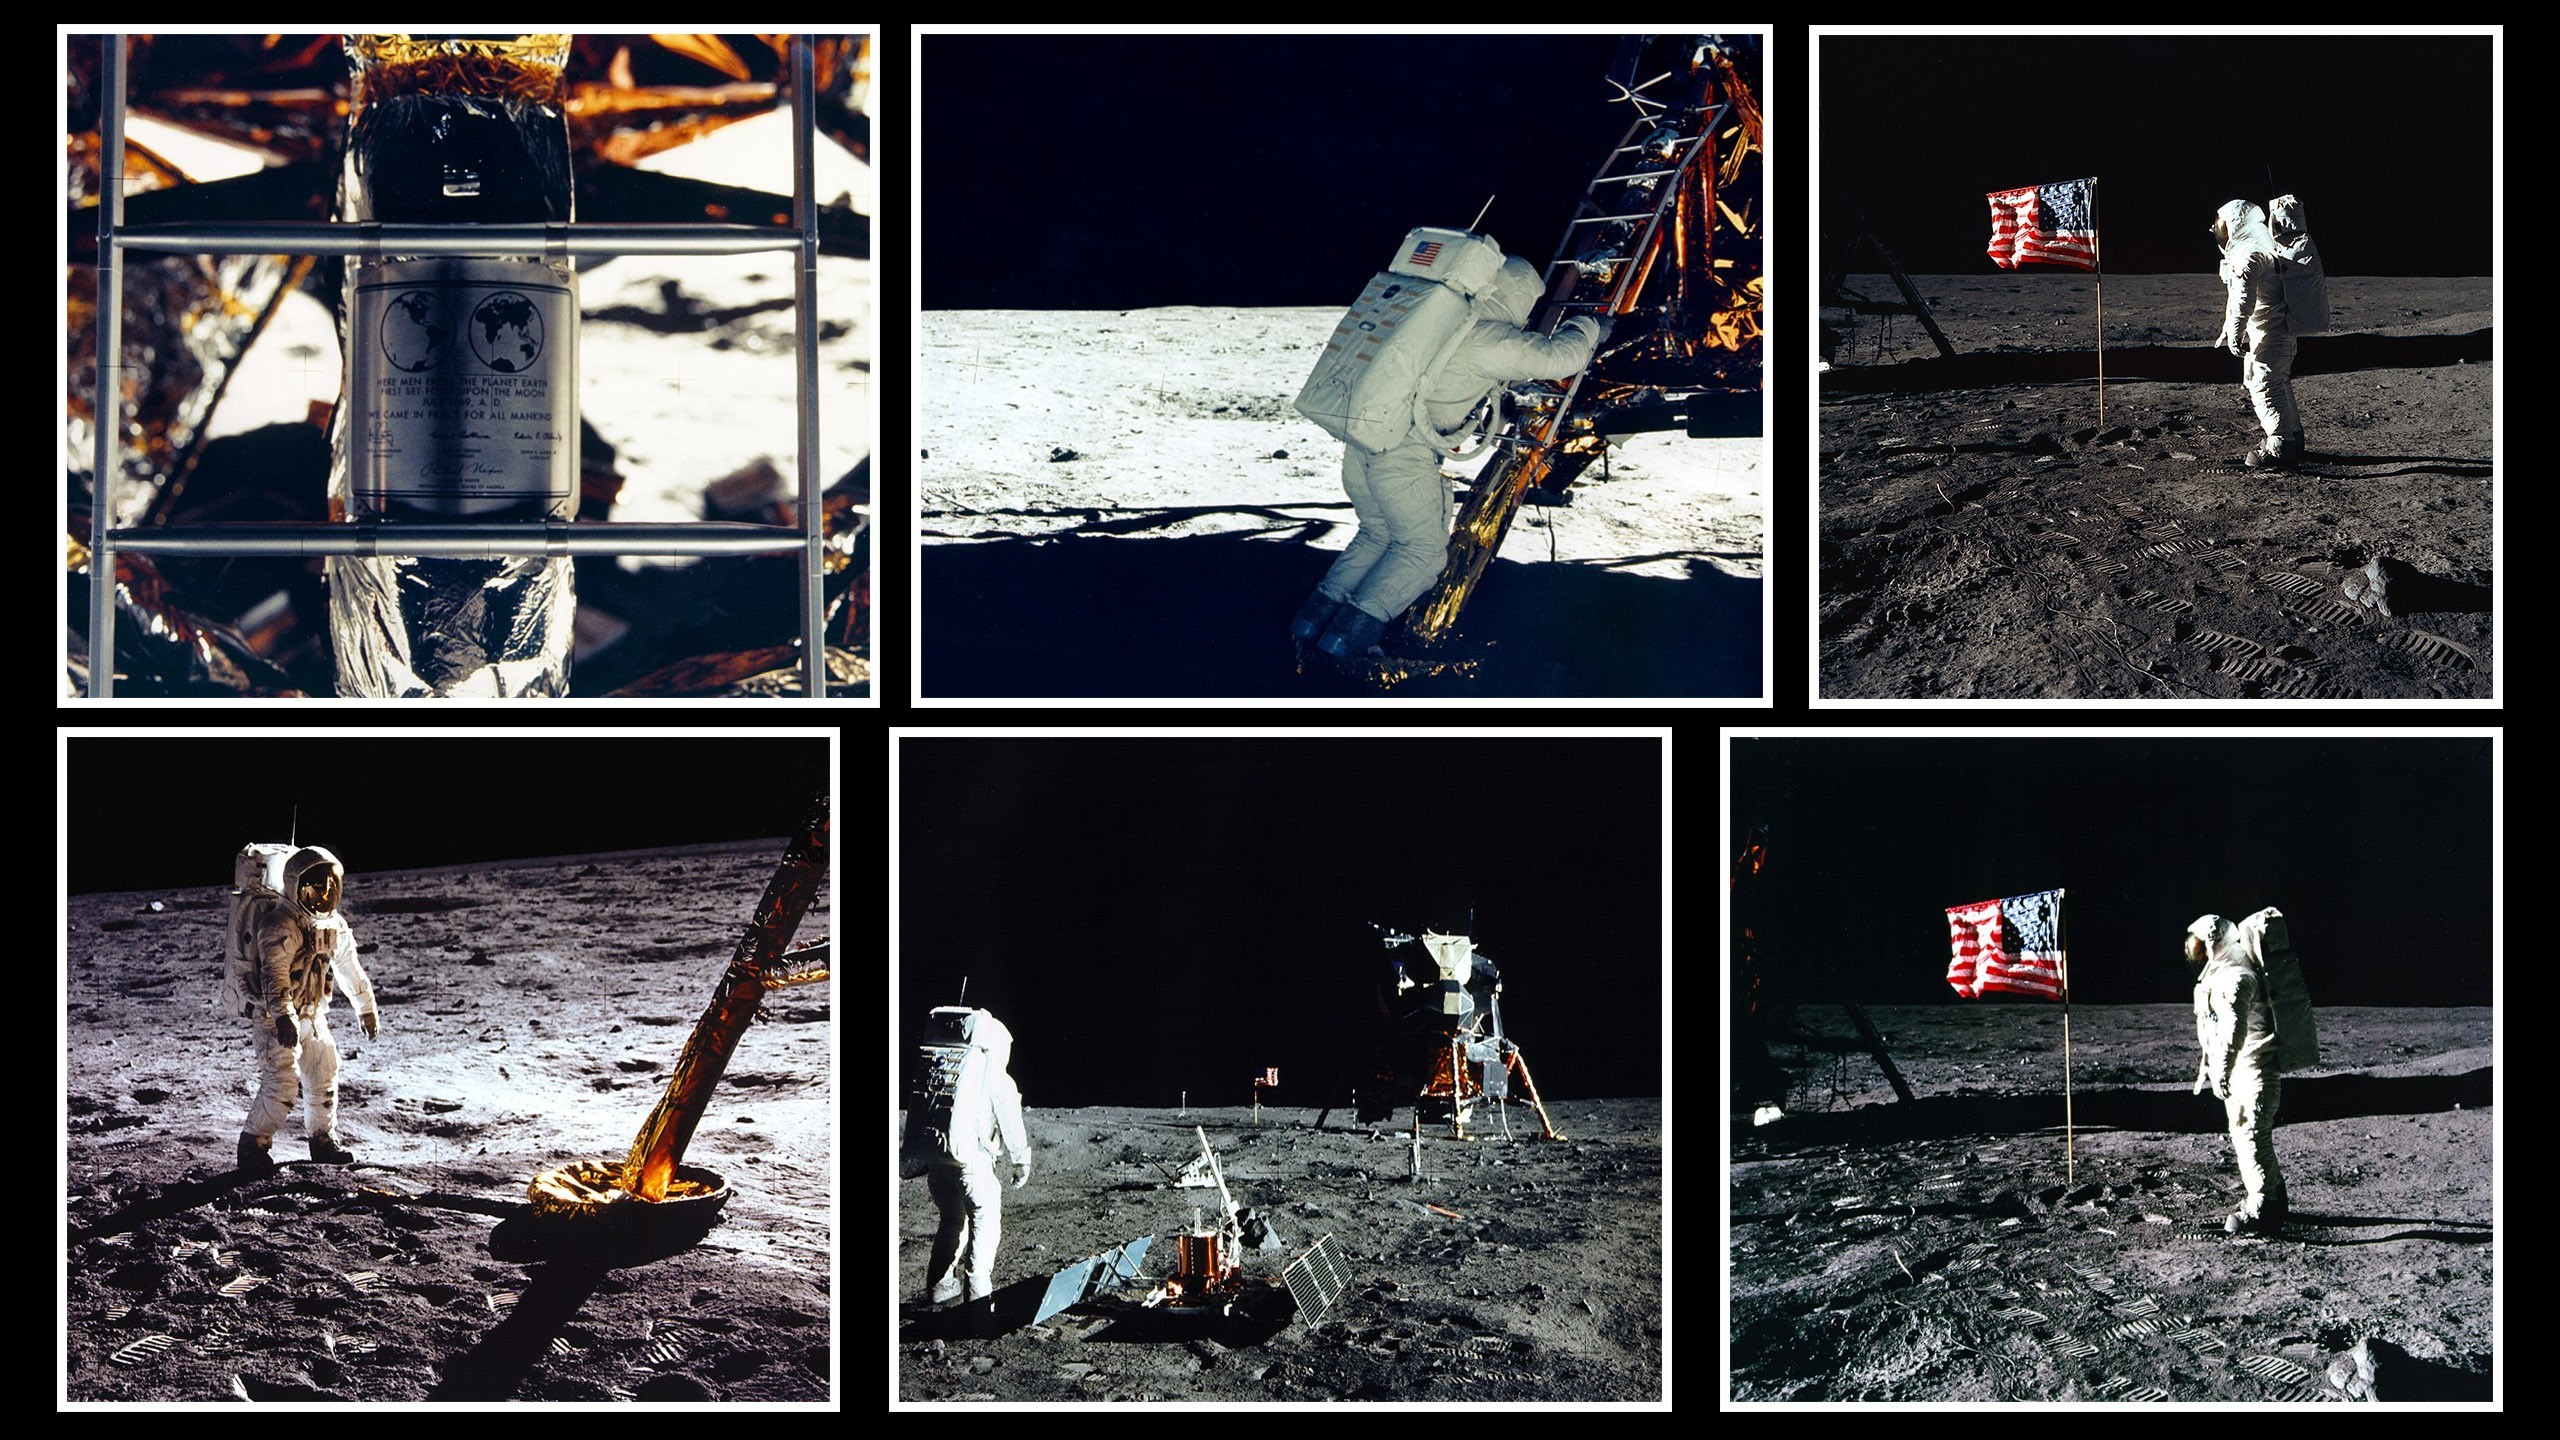 On Photography: The photographs of Neil Armstrong on the Moon, July 20, 1969 from Photofocus